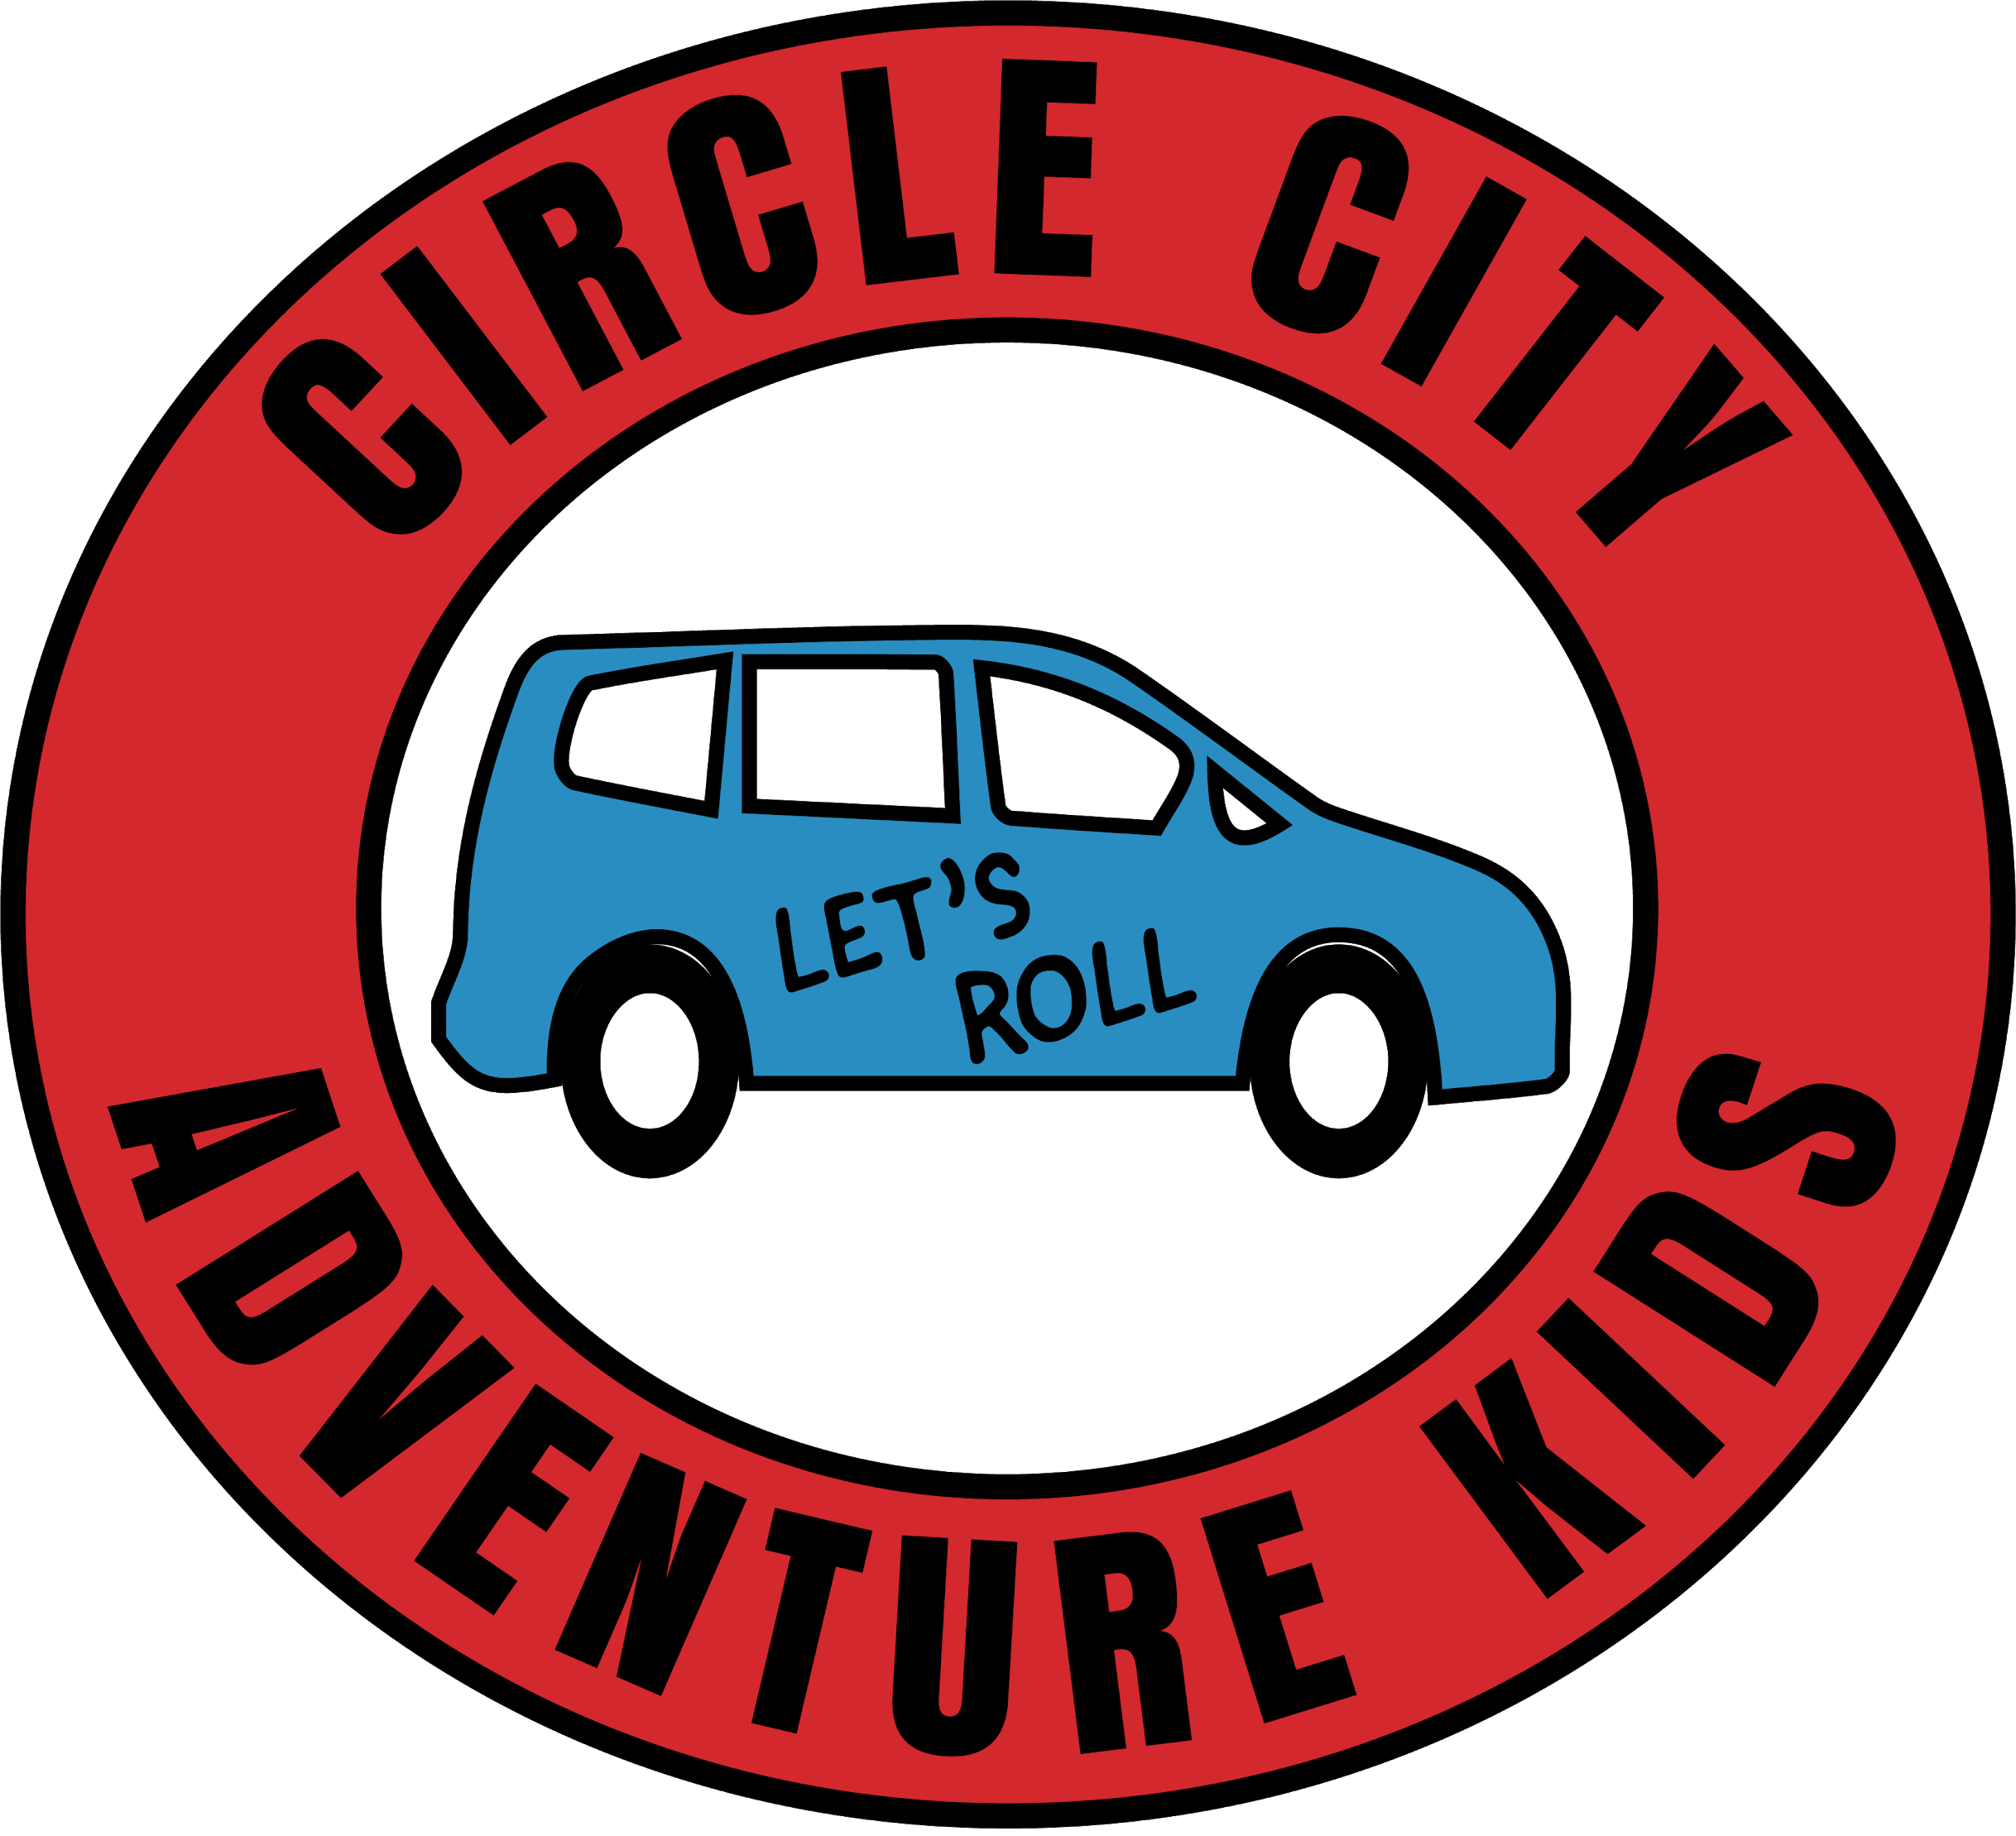 Circle City Adventure Kids